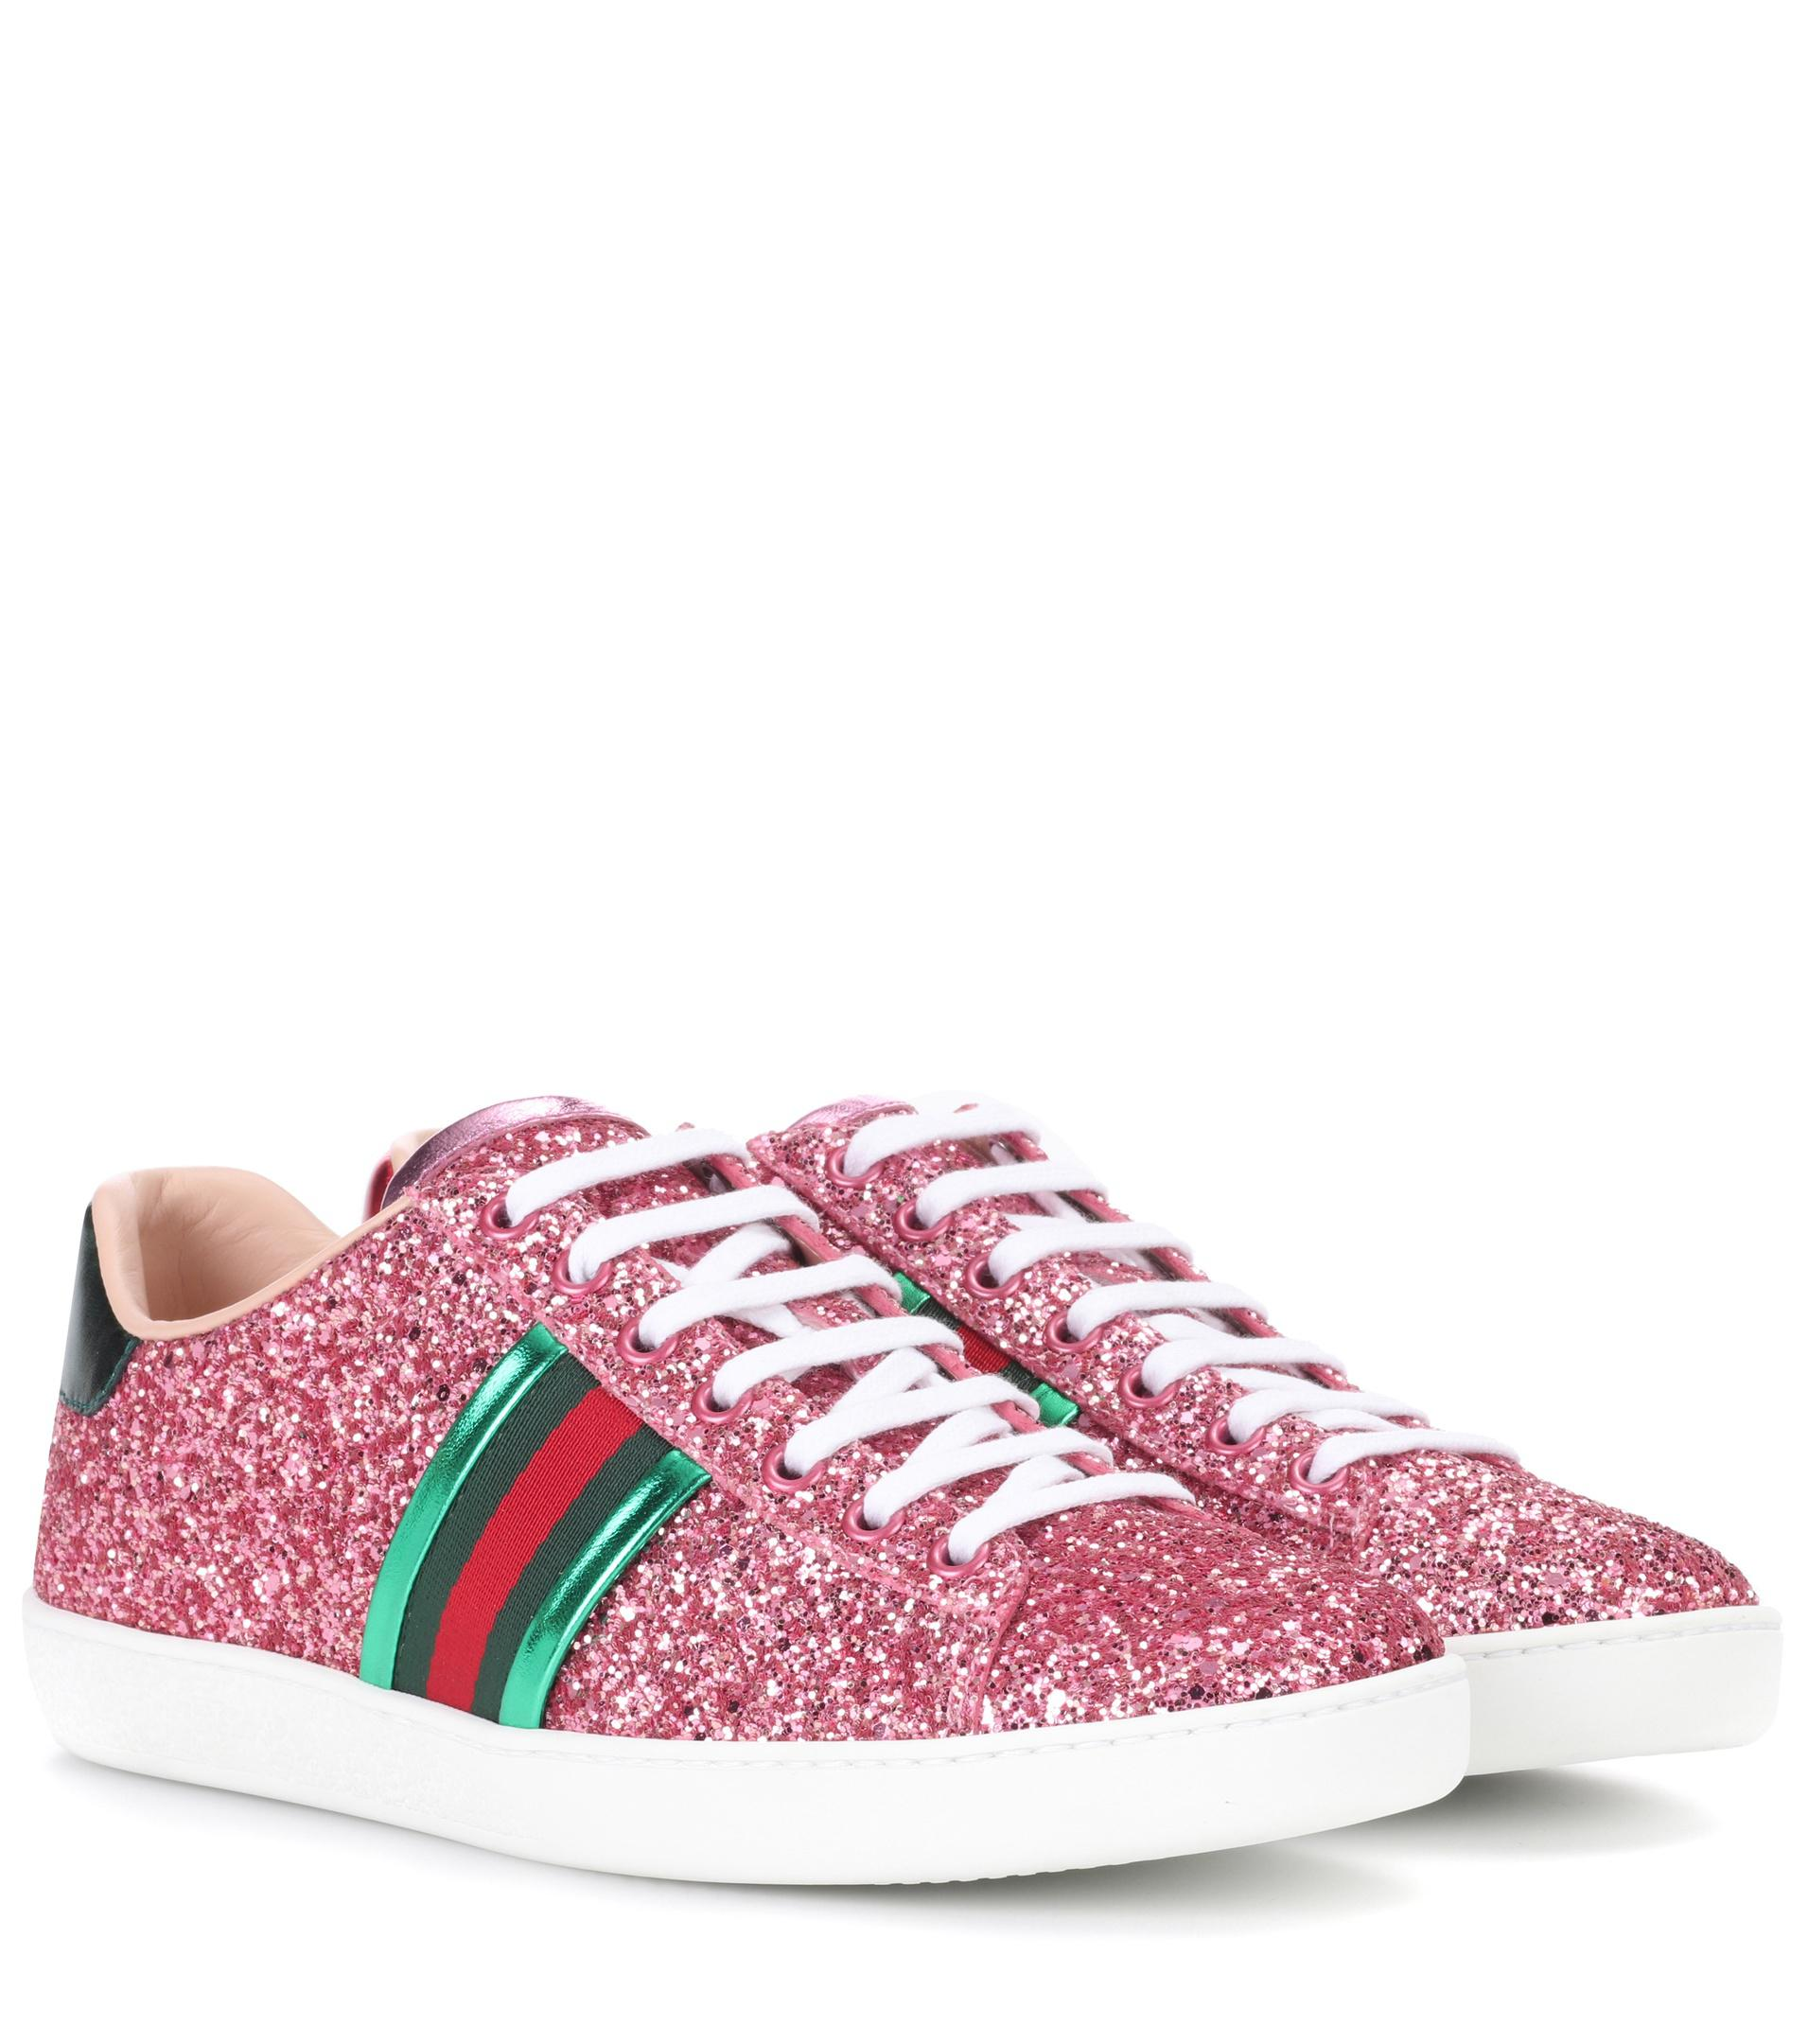 b4d27bd55 Gucci Ace Glitter Sneakers in Pink - Lyst